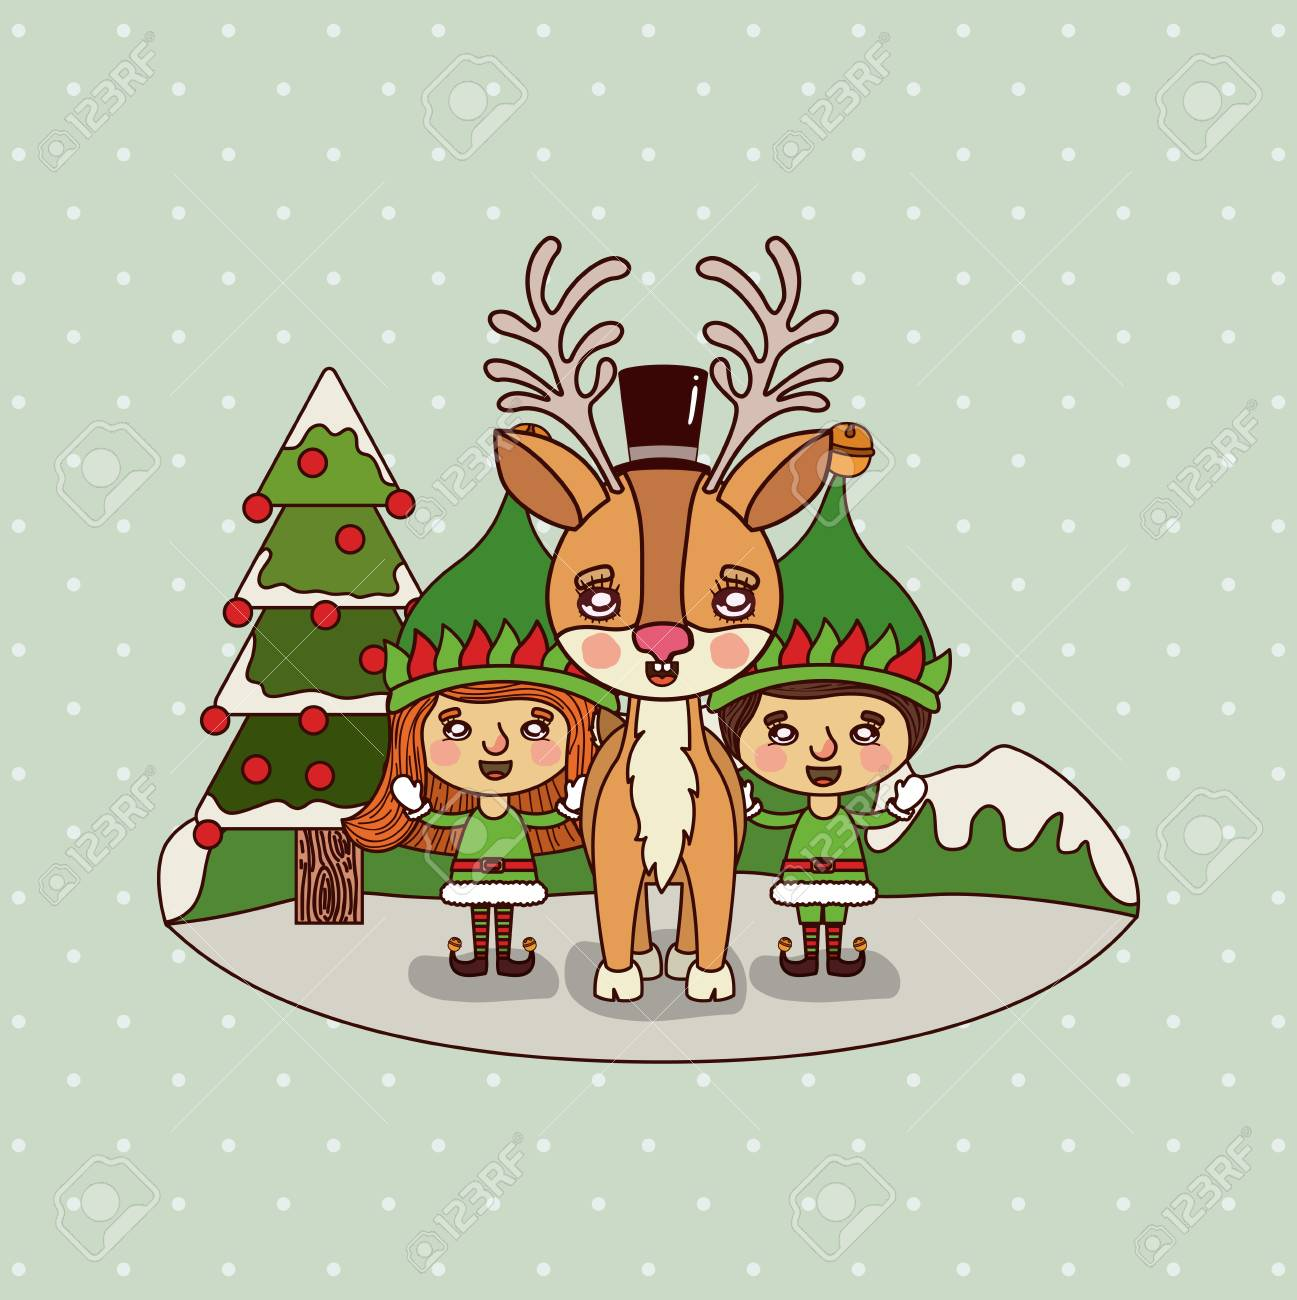 Colorful Christmas Background For Kids.Christmas Card With Christmas Tree And Gnome Kids And Reindeer